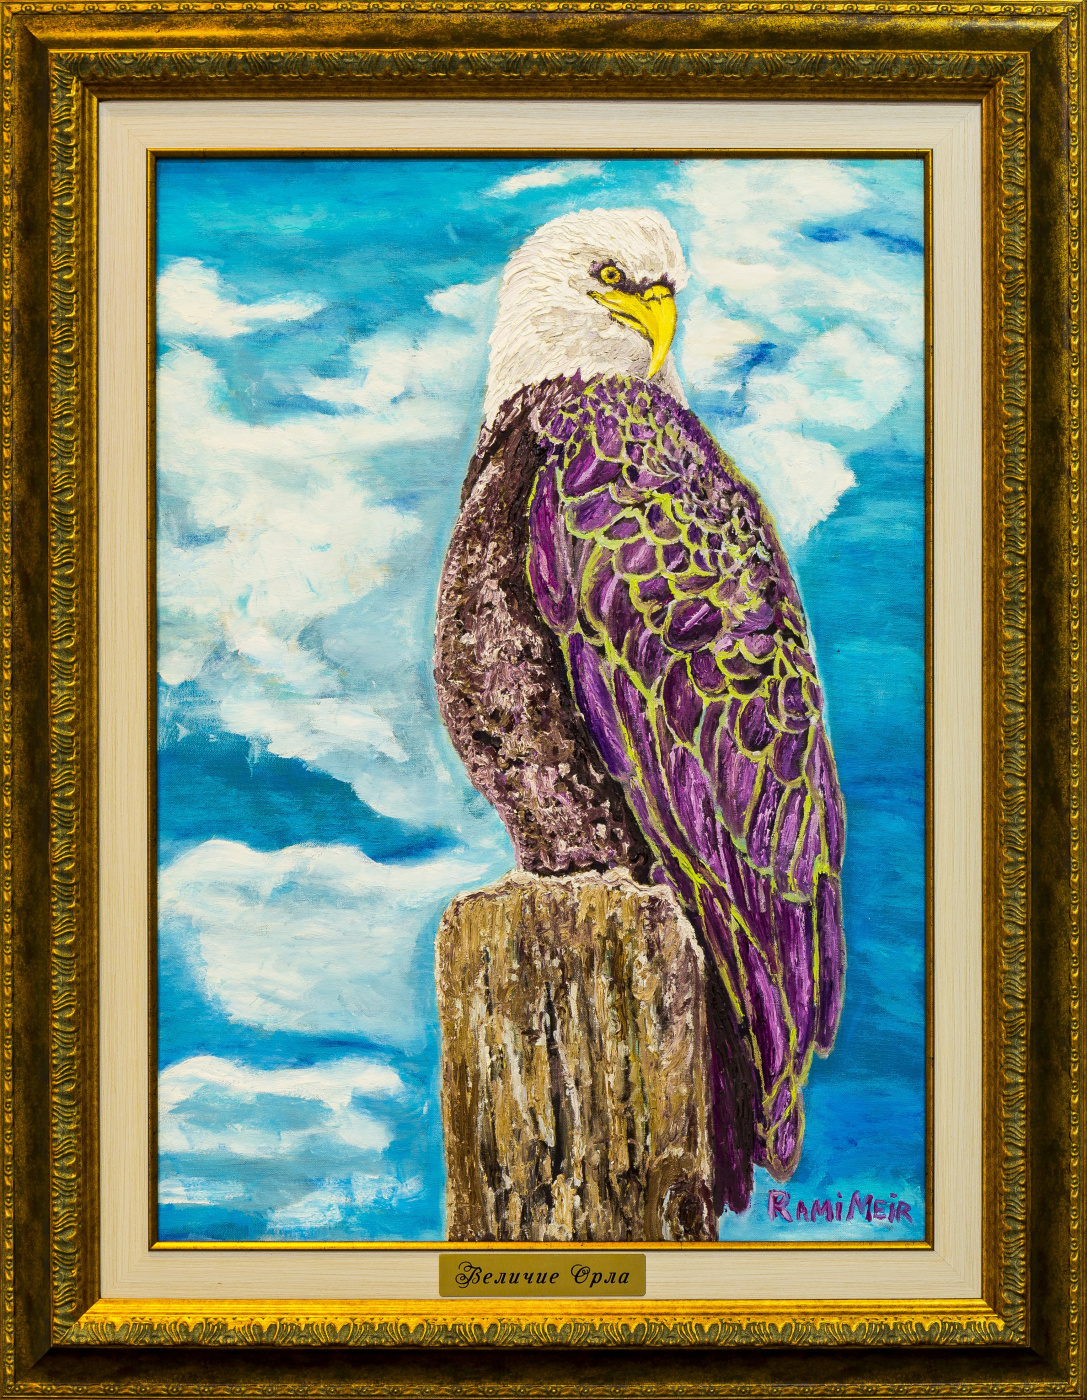 Rami Meir. The greatness of the eagle